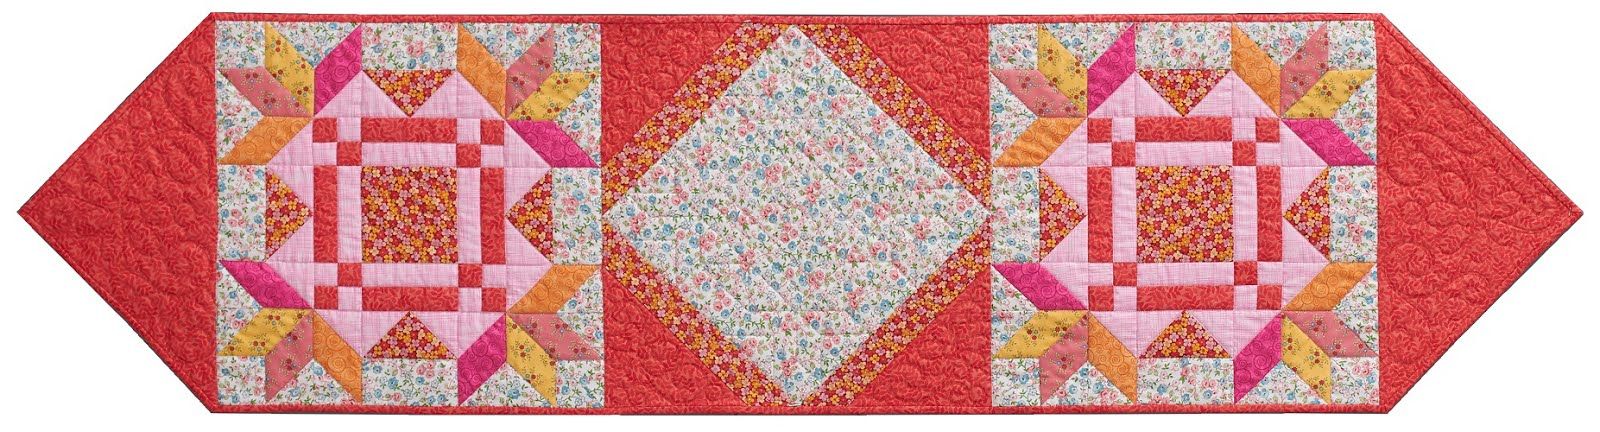 Love of Quilting September/October 2017